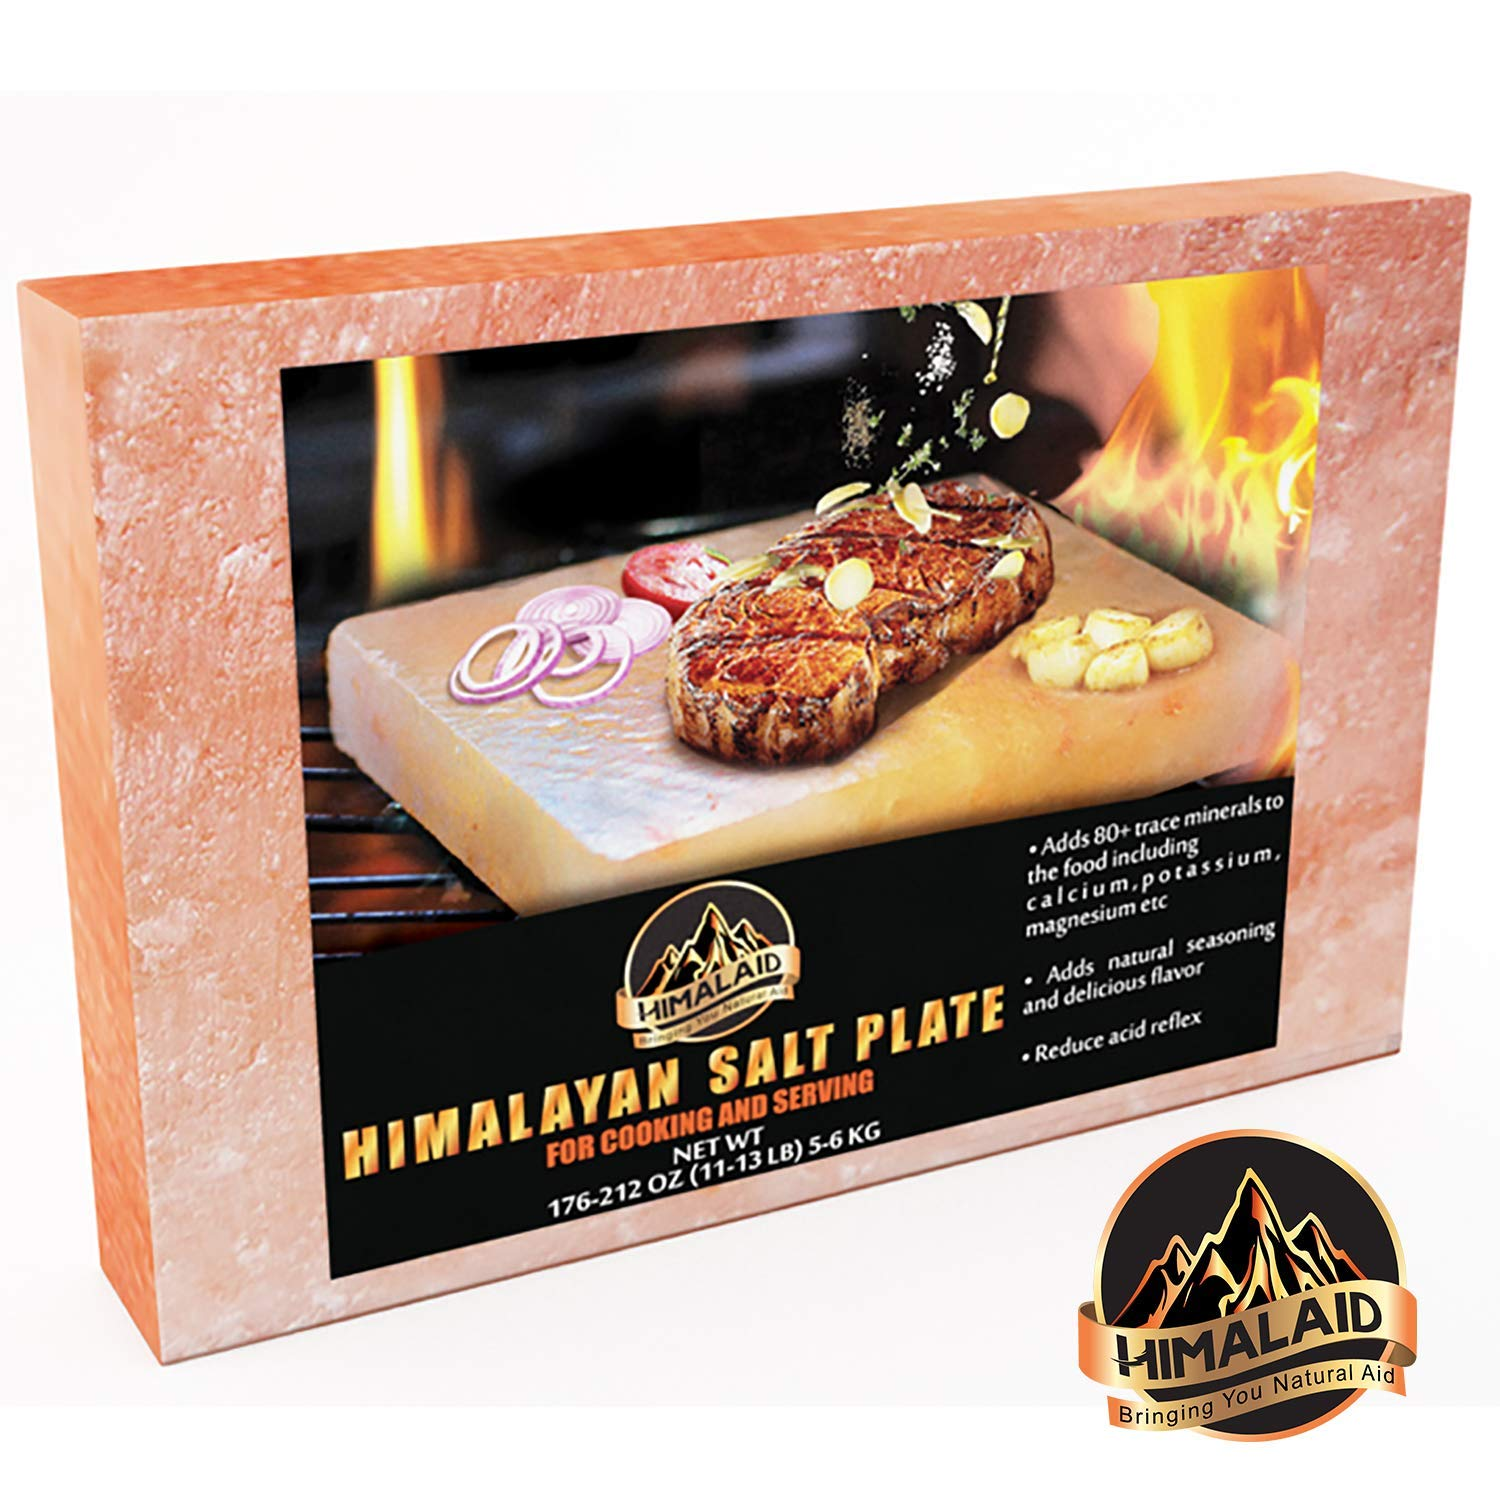 HIMALAID Himalayan Salt Block, 12'' x 8'' x 2'' Large - for Cooking & Serving. Naturally Flavors Food, Provides 80 Plus Trace Minerals: Calcium, Potassium, Magnesium. Balances pH to Reduce Acid.